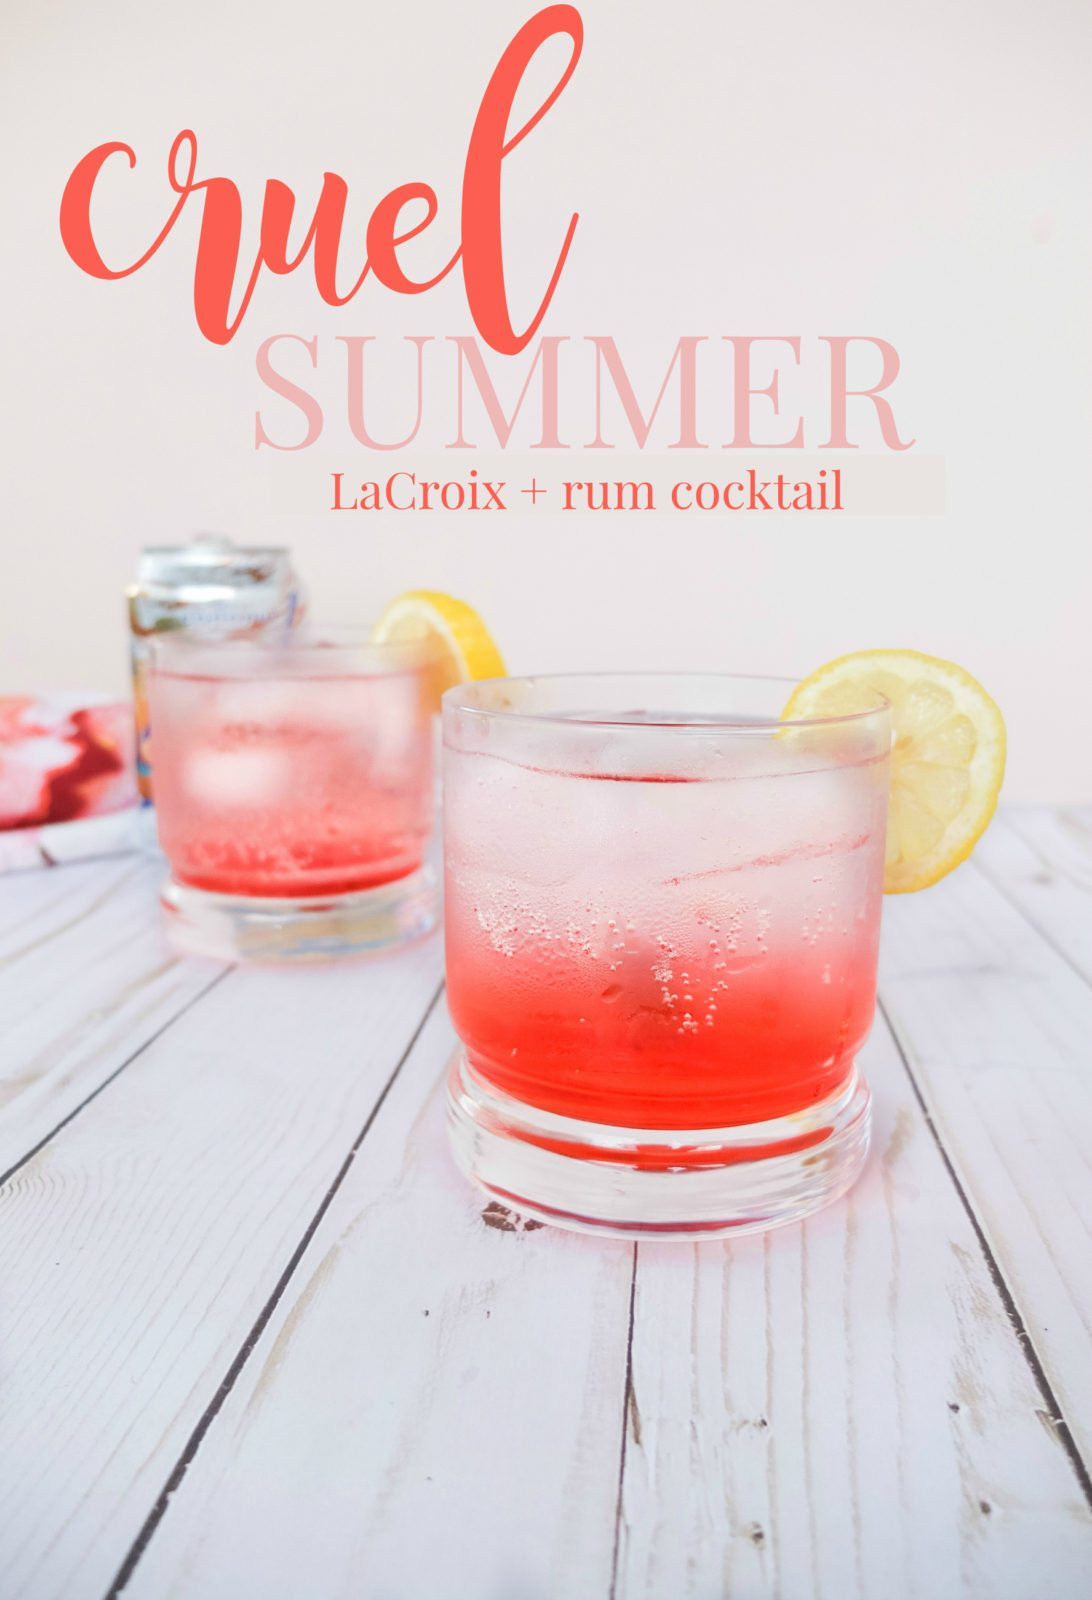 A rum summer drink recipes that makes for a simple summer cocktail using only 4 ingredients. This LaCroix cocktail will be the perfect refreshing summer cocktail to beat the August heat. Using strawberry syrup, coconut sparkling water, lemon juice, and rum to make a light and refreshing summer or anytime drink. // www.elletalk.com